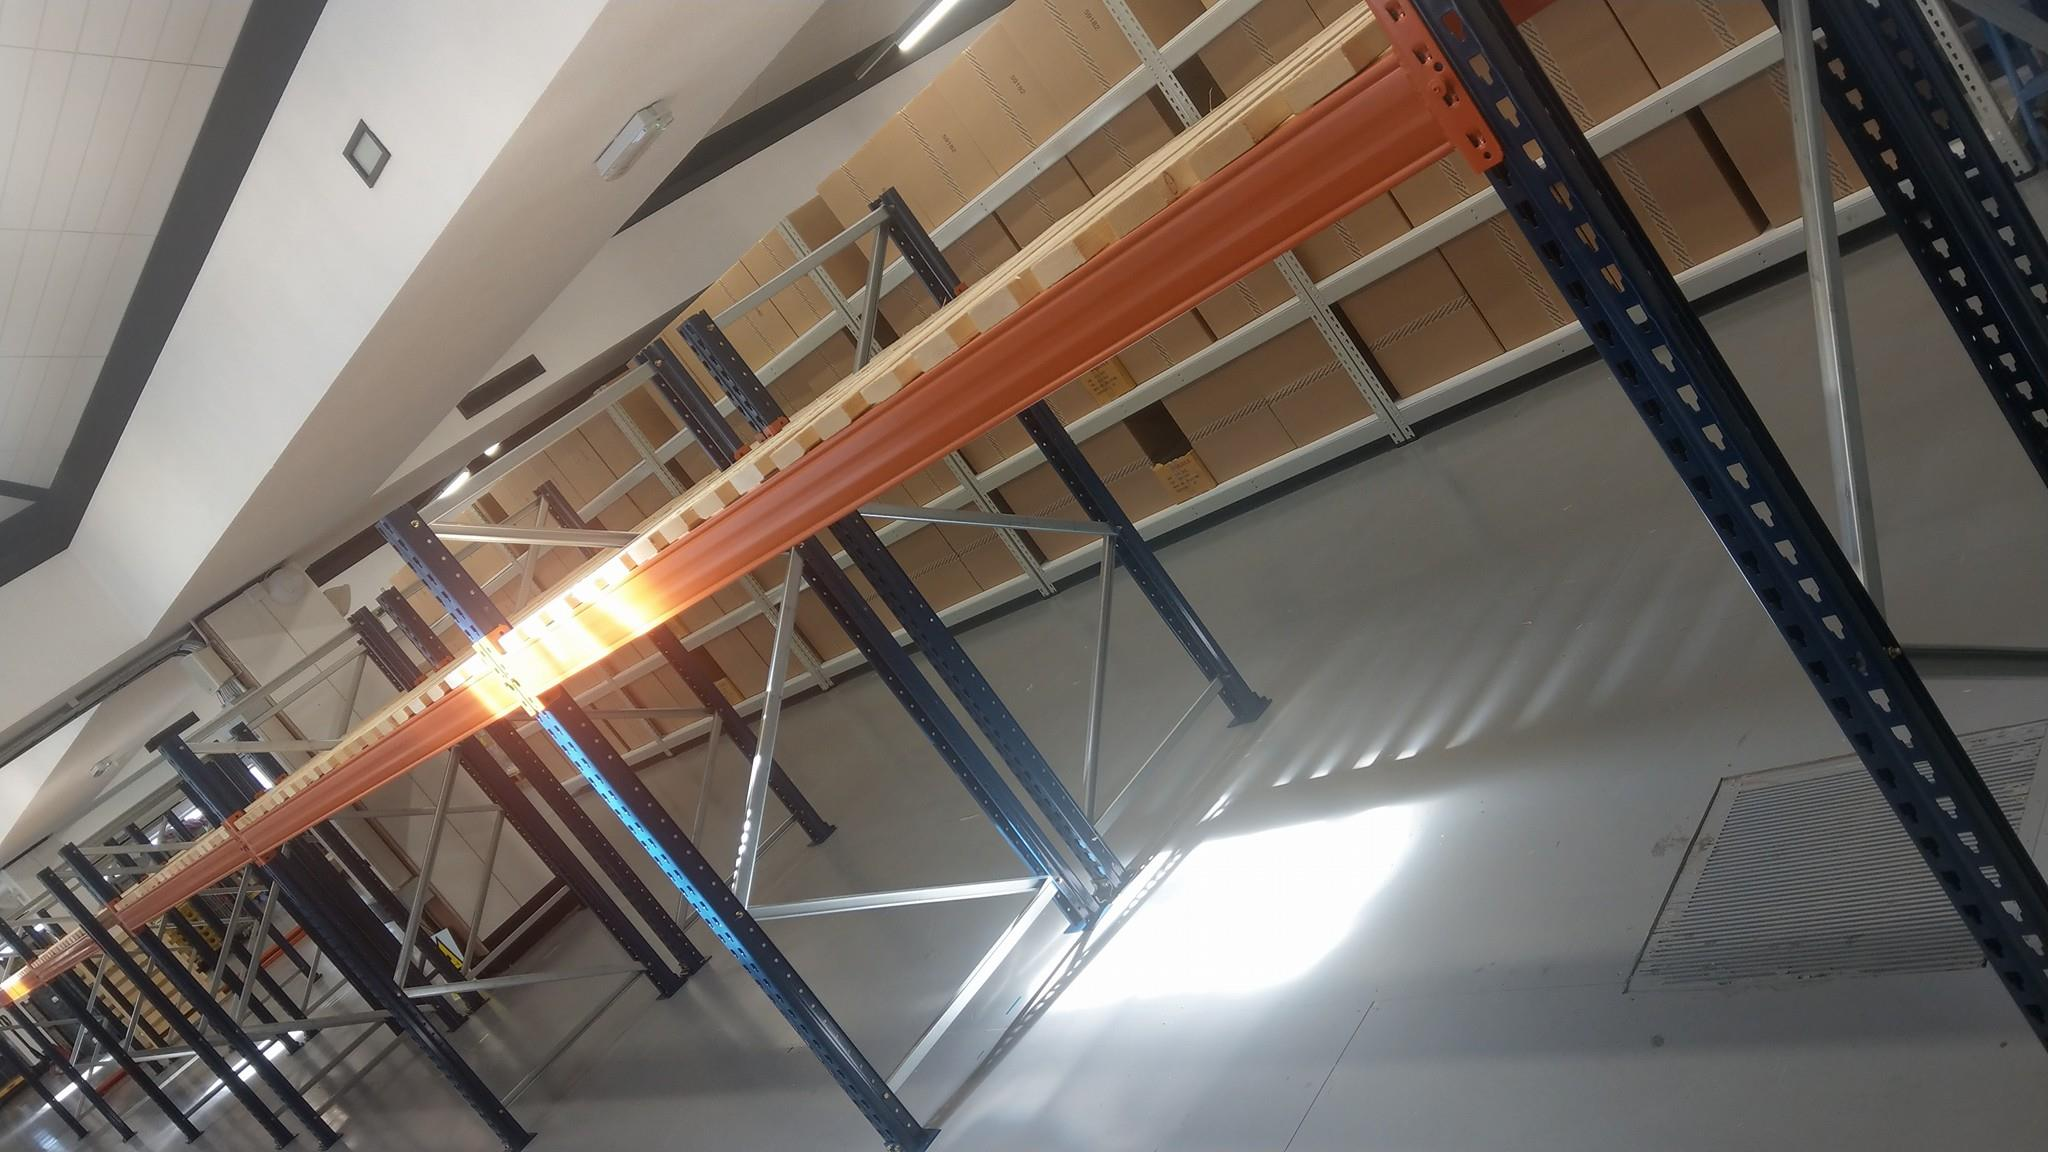 Low level pallet racking with open timber decks